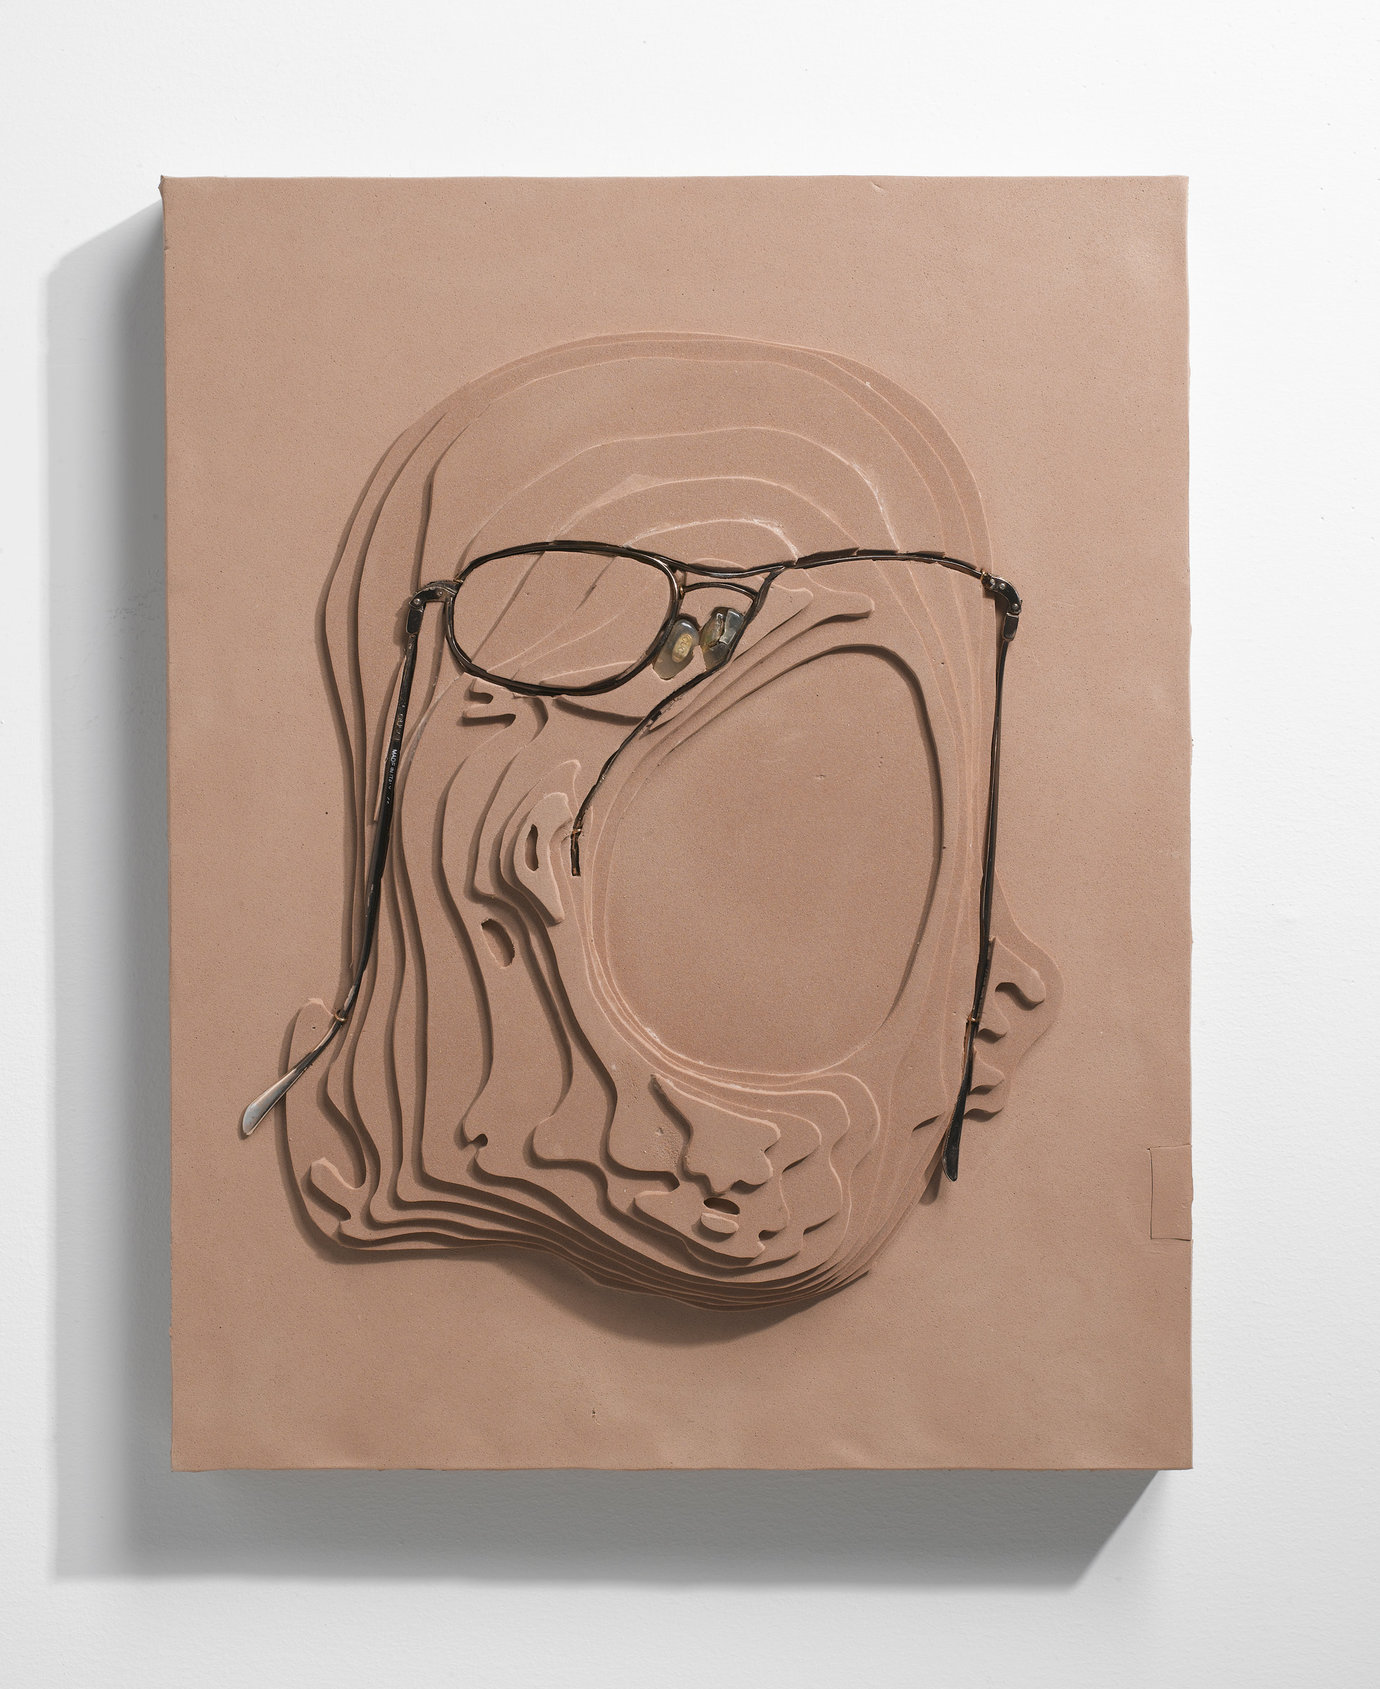 ", 2009. foam and eyeglasses on panel, 12"" x 9-1/2"" x 1-3/4"" (30.5 cm x 24.1 cm x 4.4 cm)."